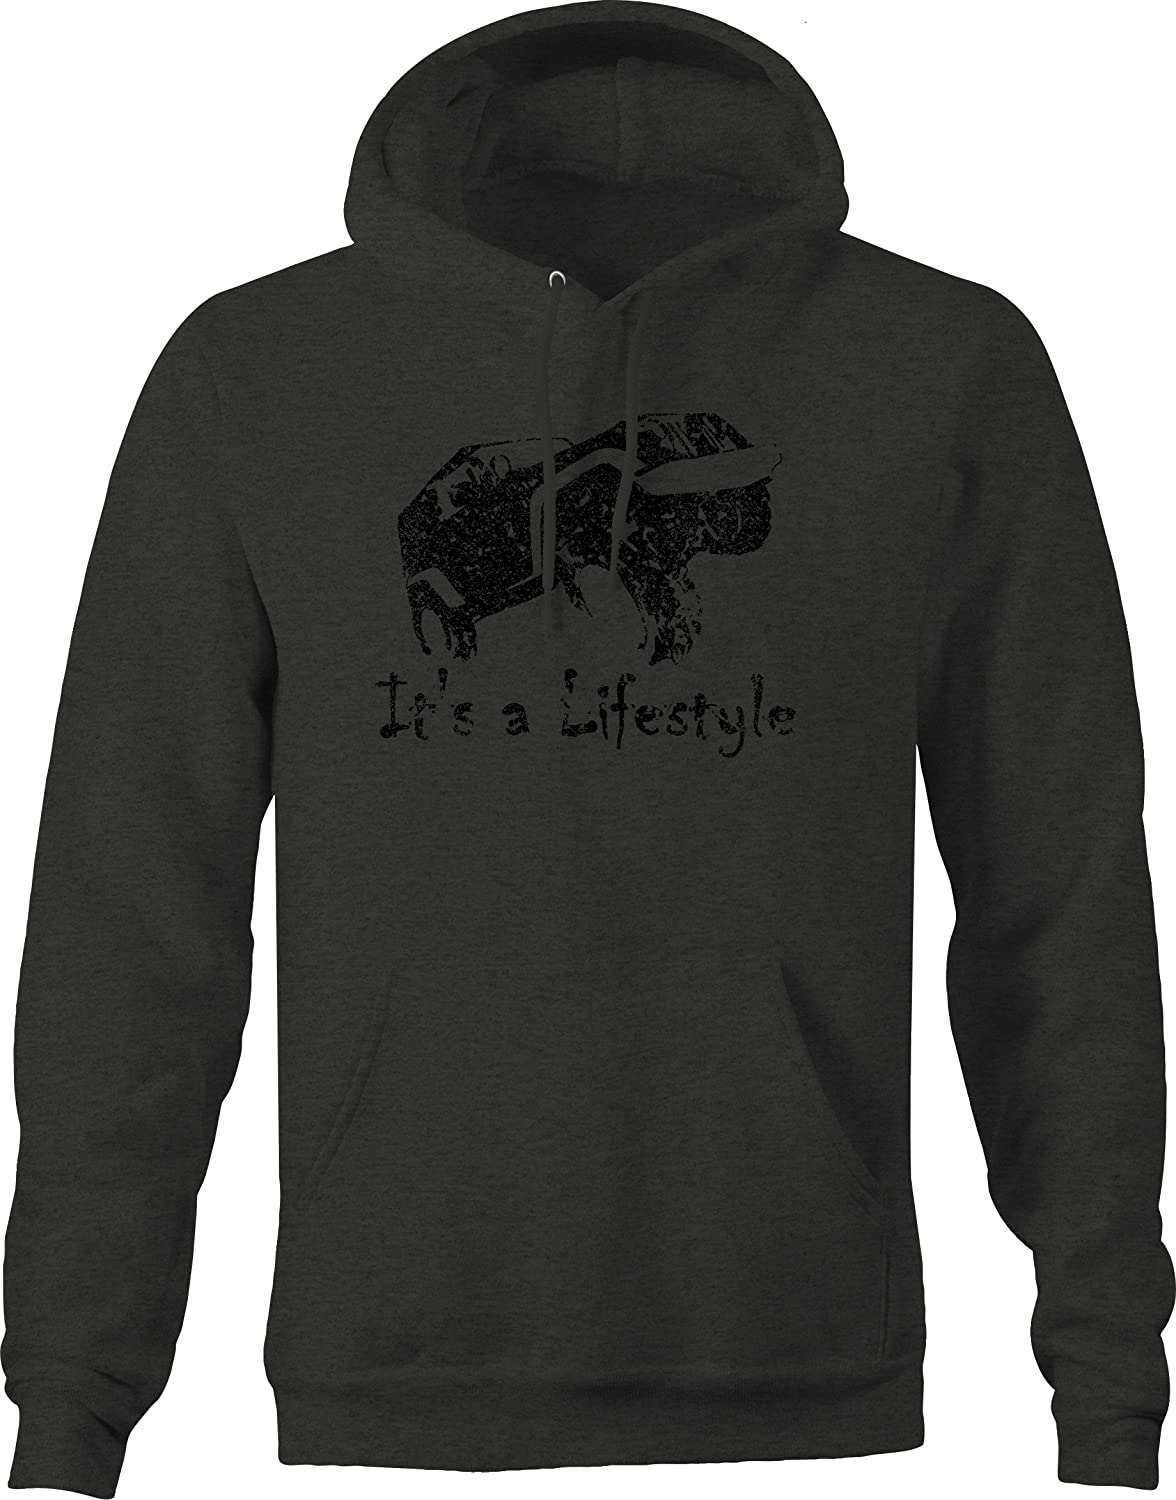 Retro Its a Lifestyle American Off-Road Funny Graphic Hoodie for Men